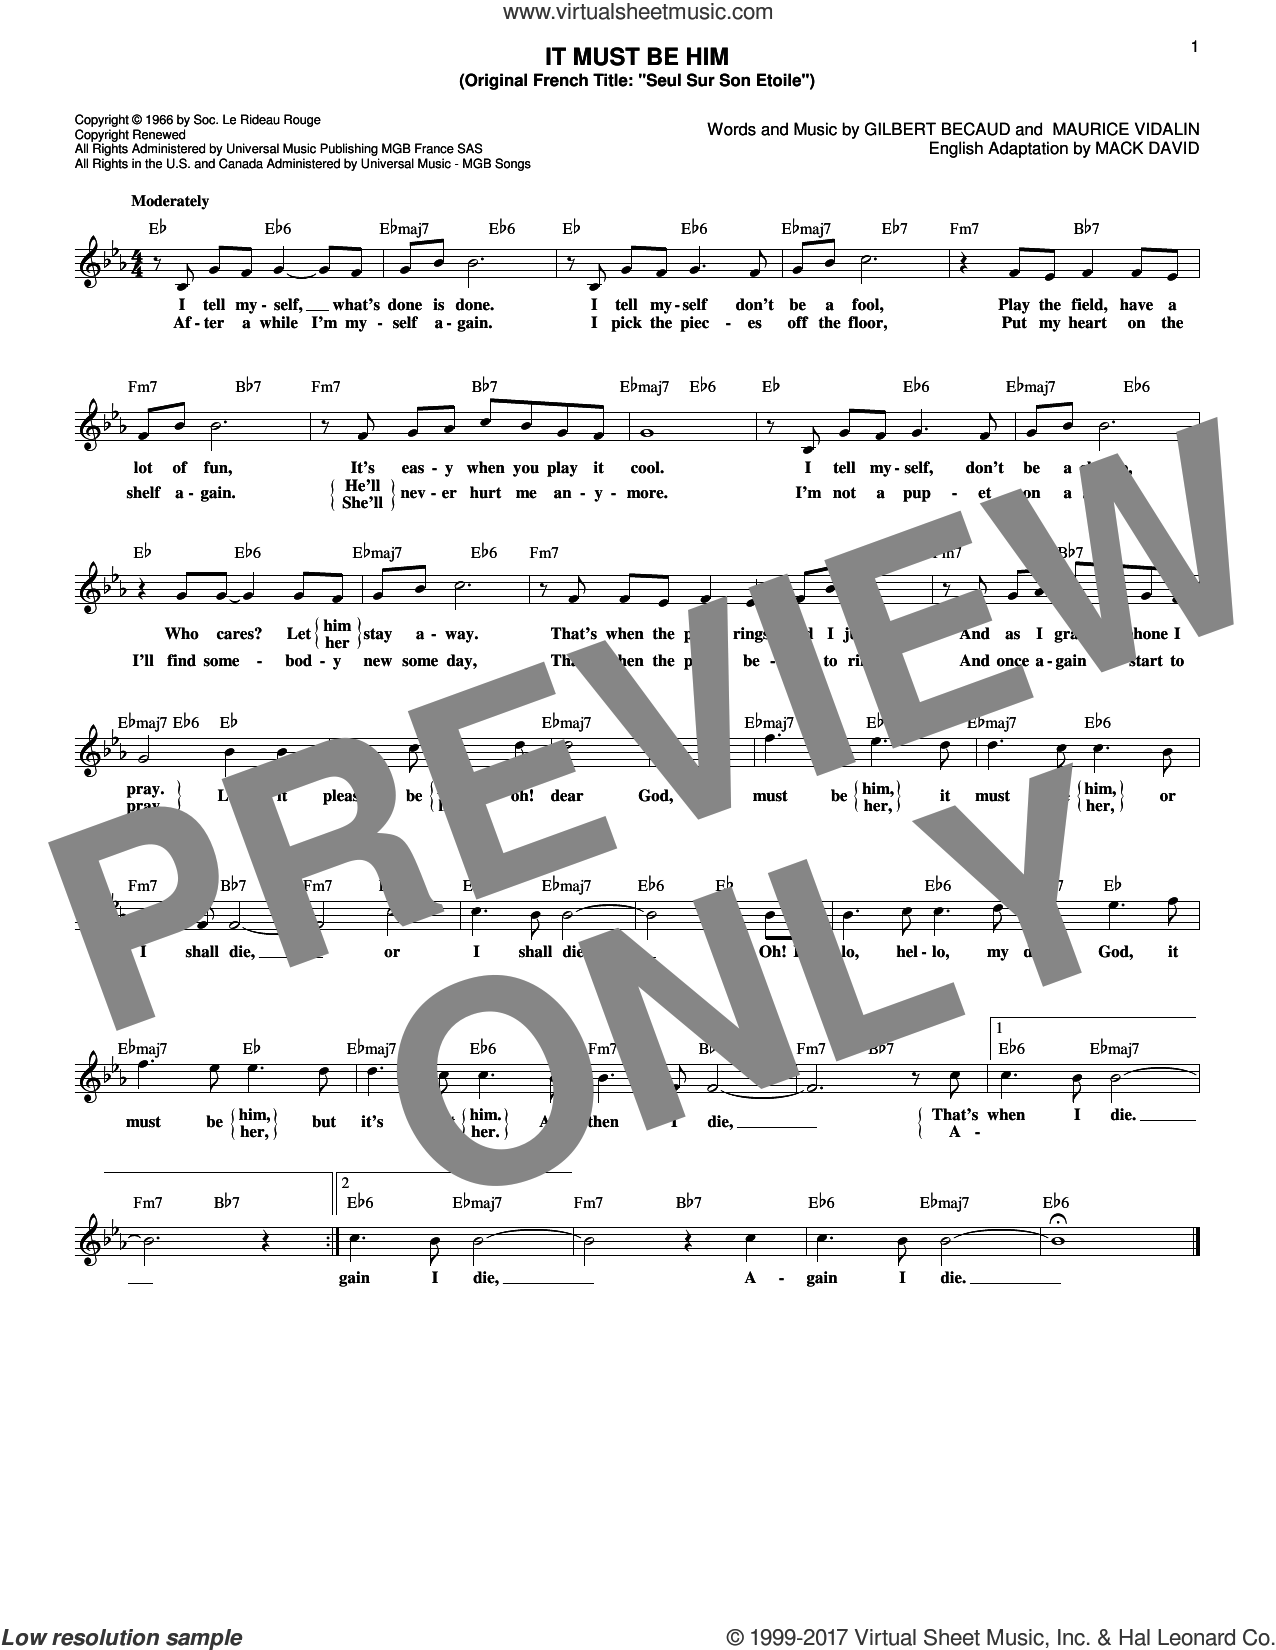 It Must Be Him sheet music for voice and other instruments (fake book) by Mack David, Vikki Carr, Gilbert Becaud and Maurice Vidalin, intermediate skill level